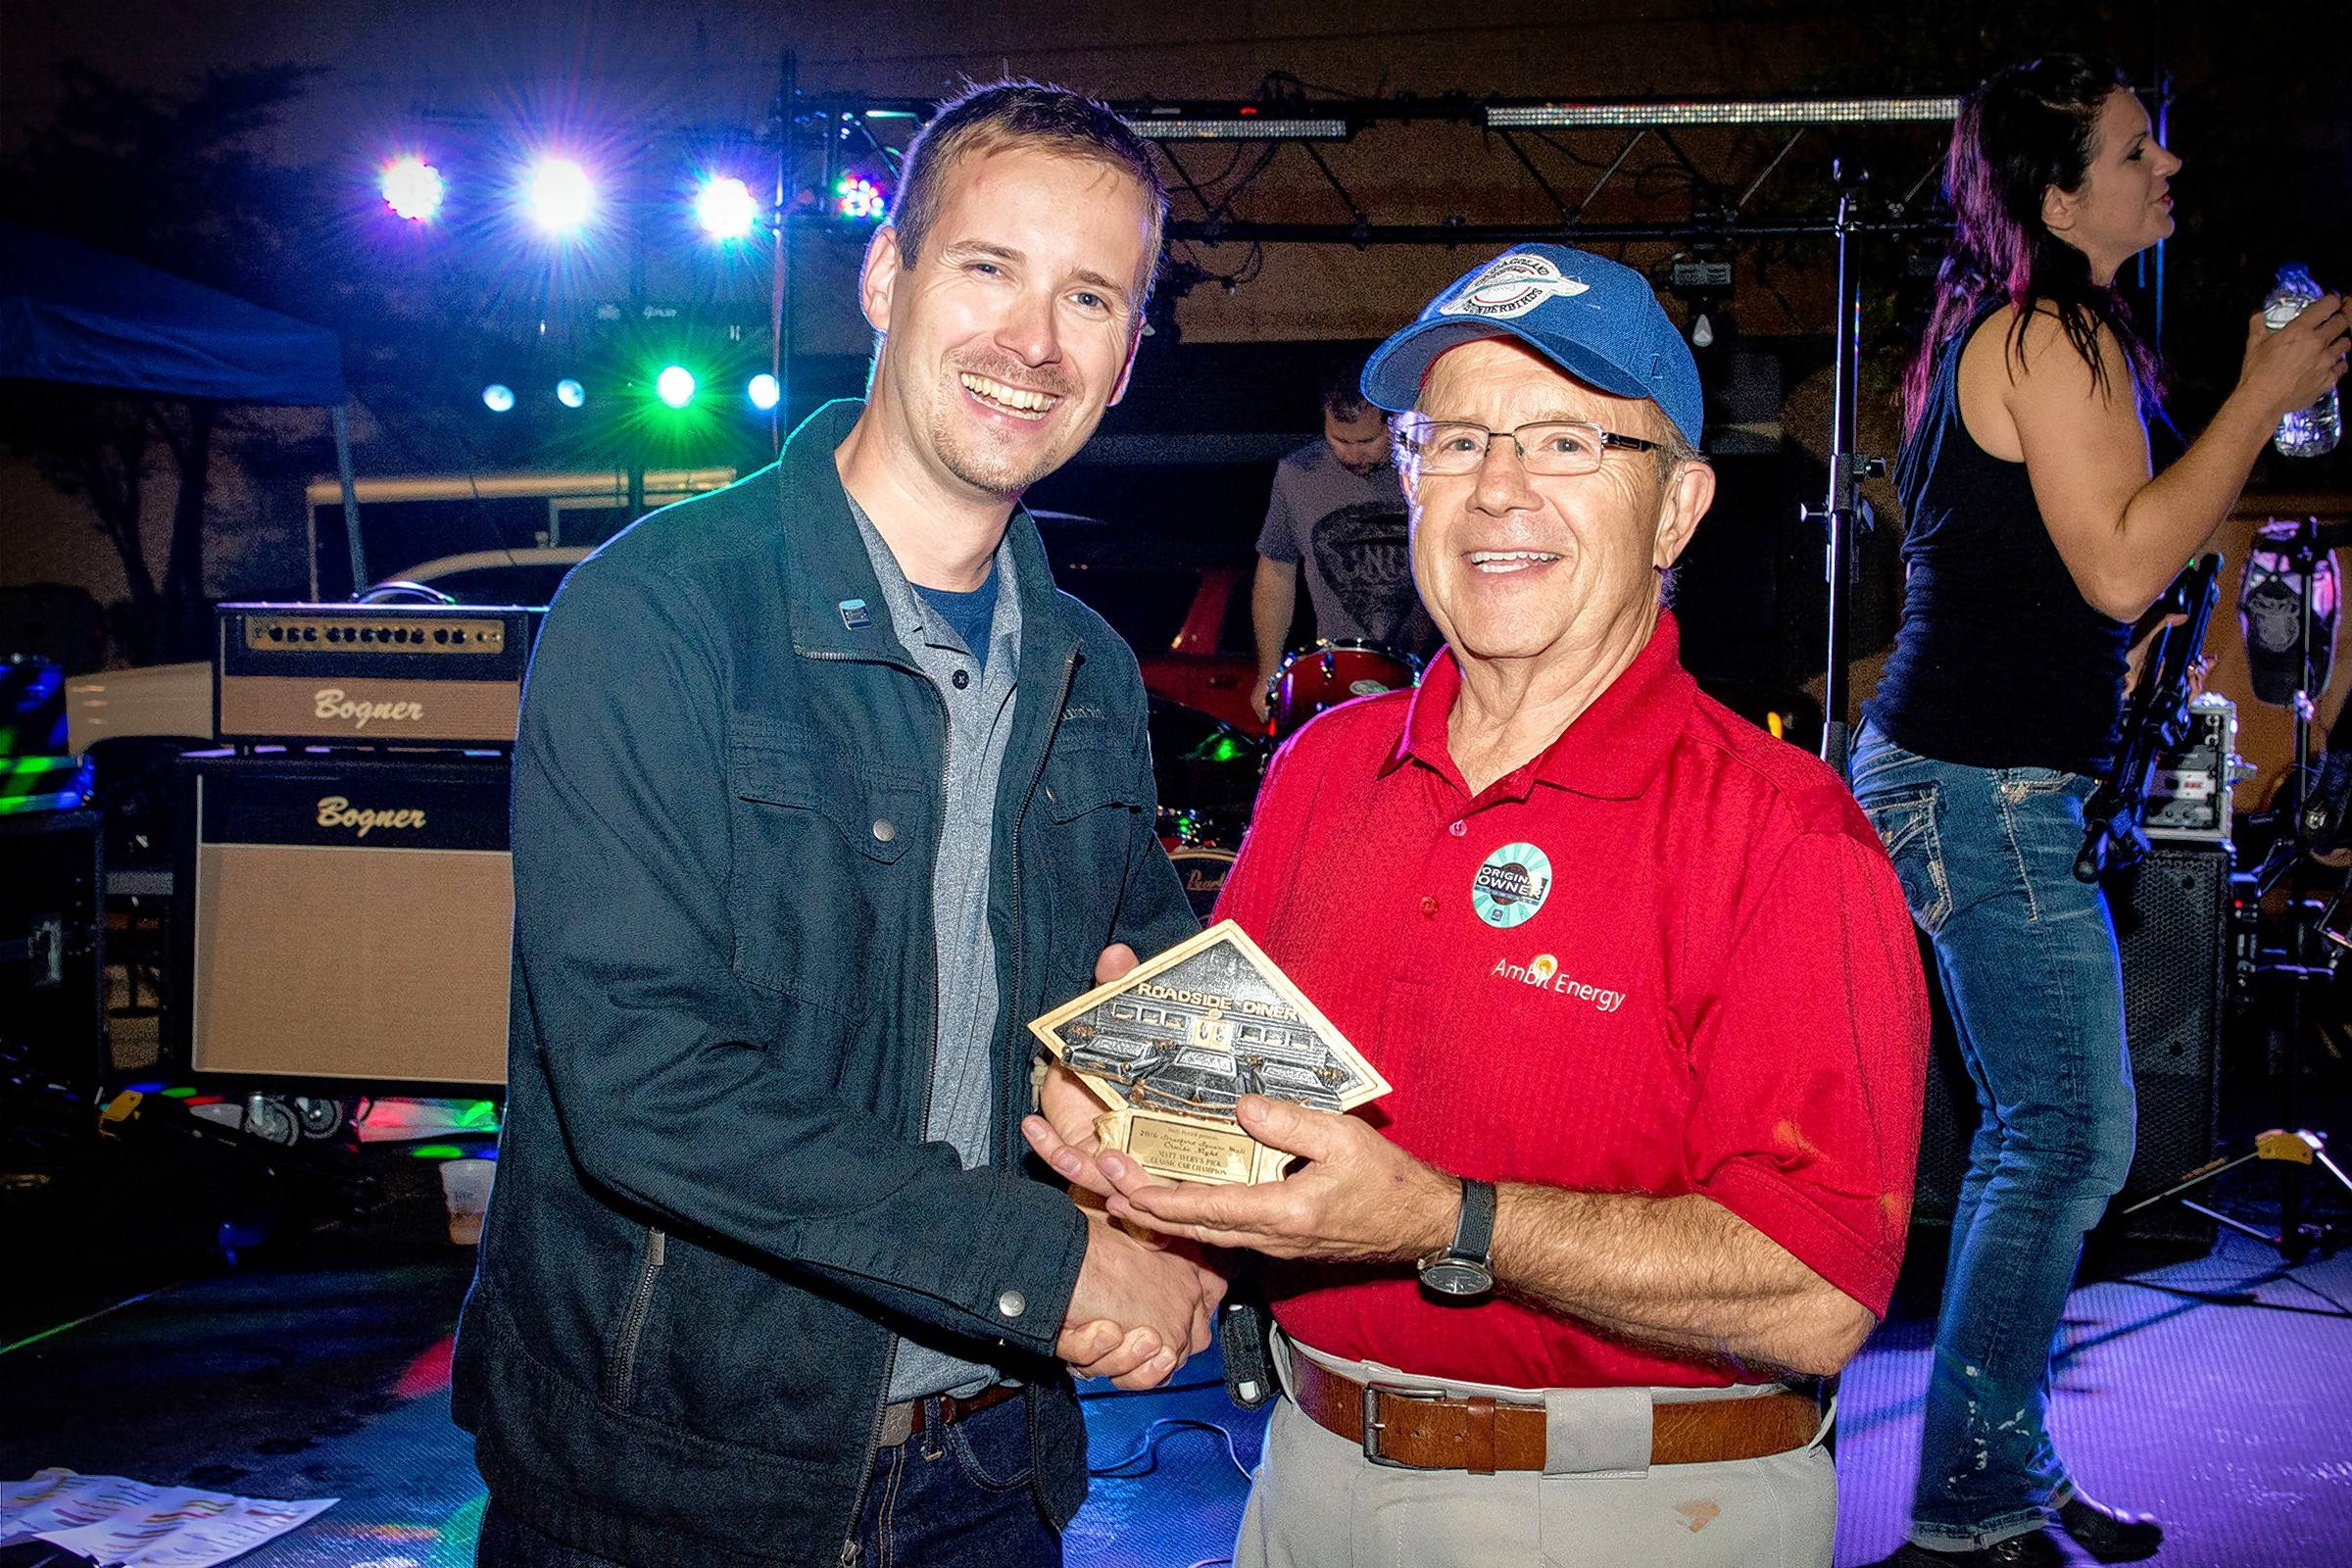 Classic Recollections columnist Matt Avery, left, makes Larry Leafblad of Crystal Lake the winner of his Daily Herald Cruise Night award.